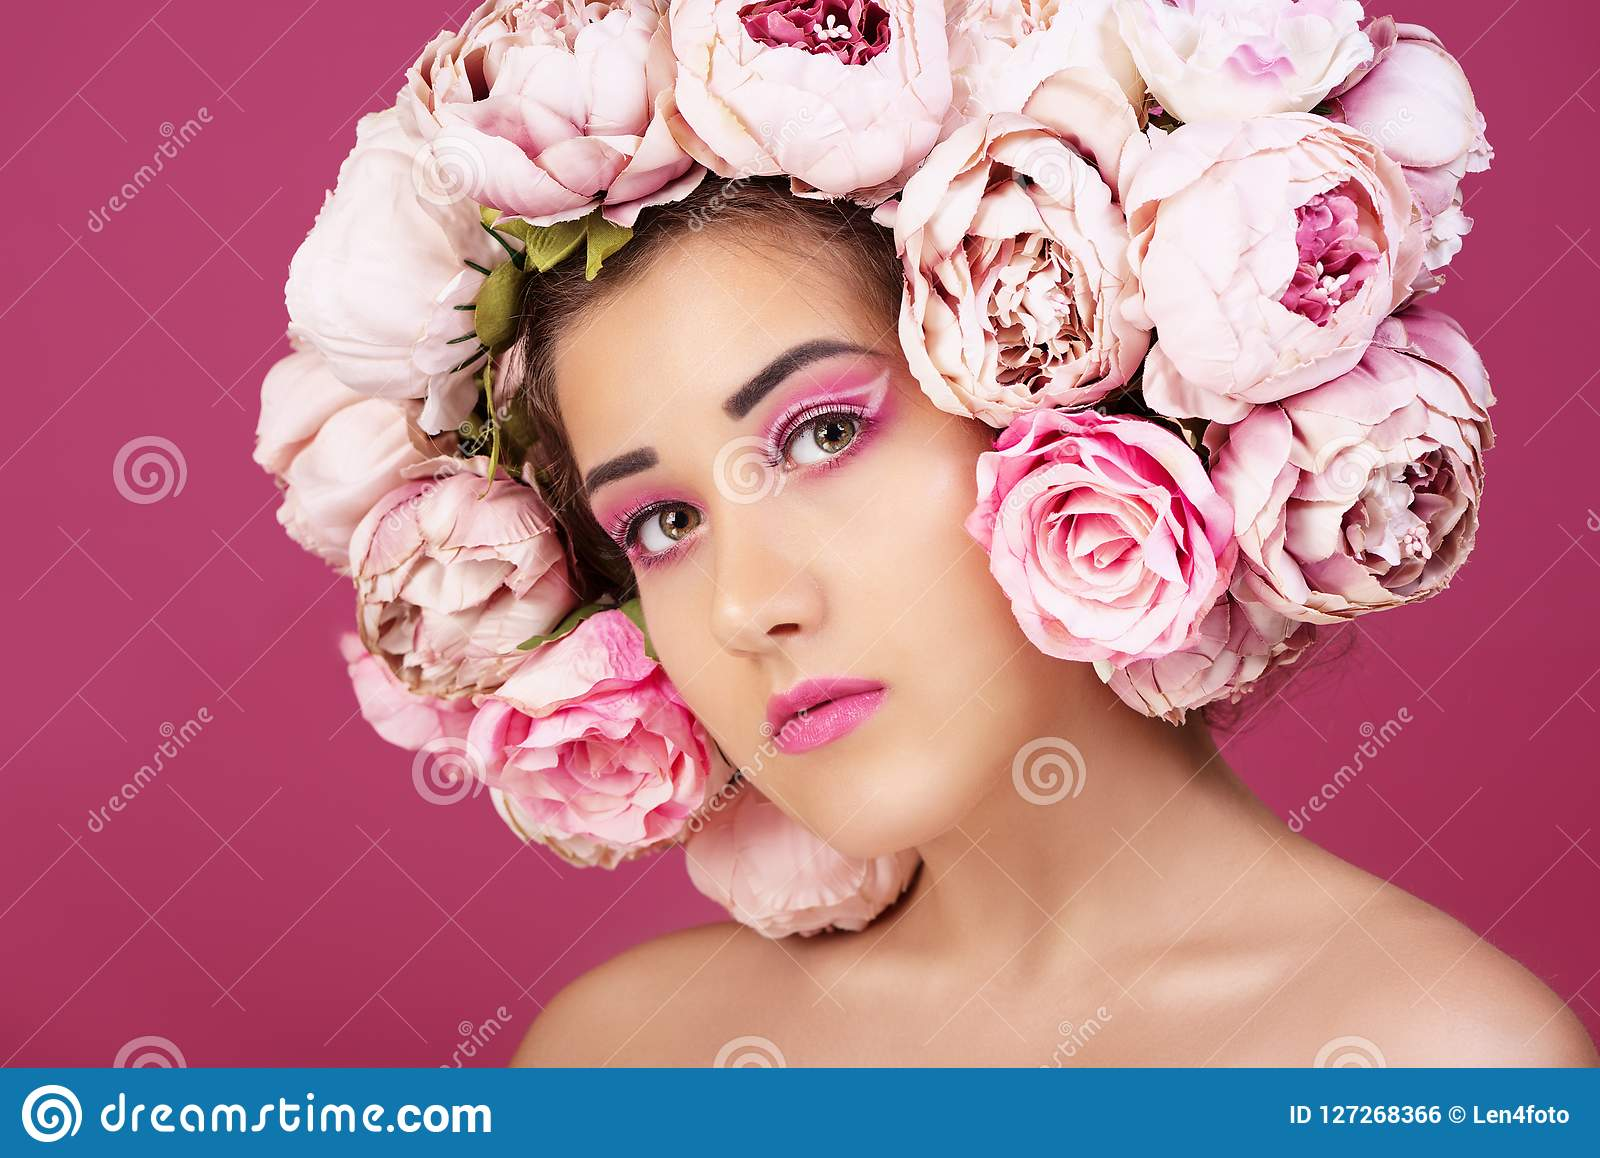 Close up portrait of beautiful young girl with pink roses flower on head and make up